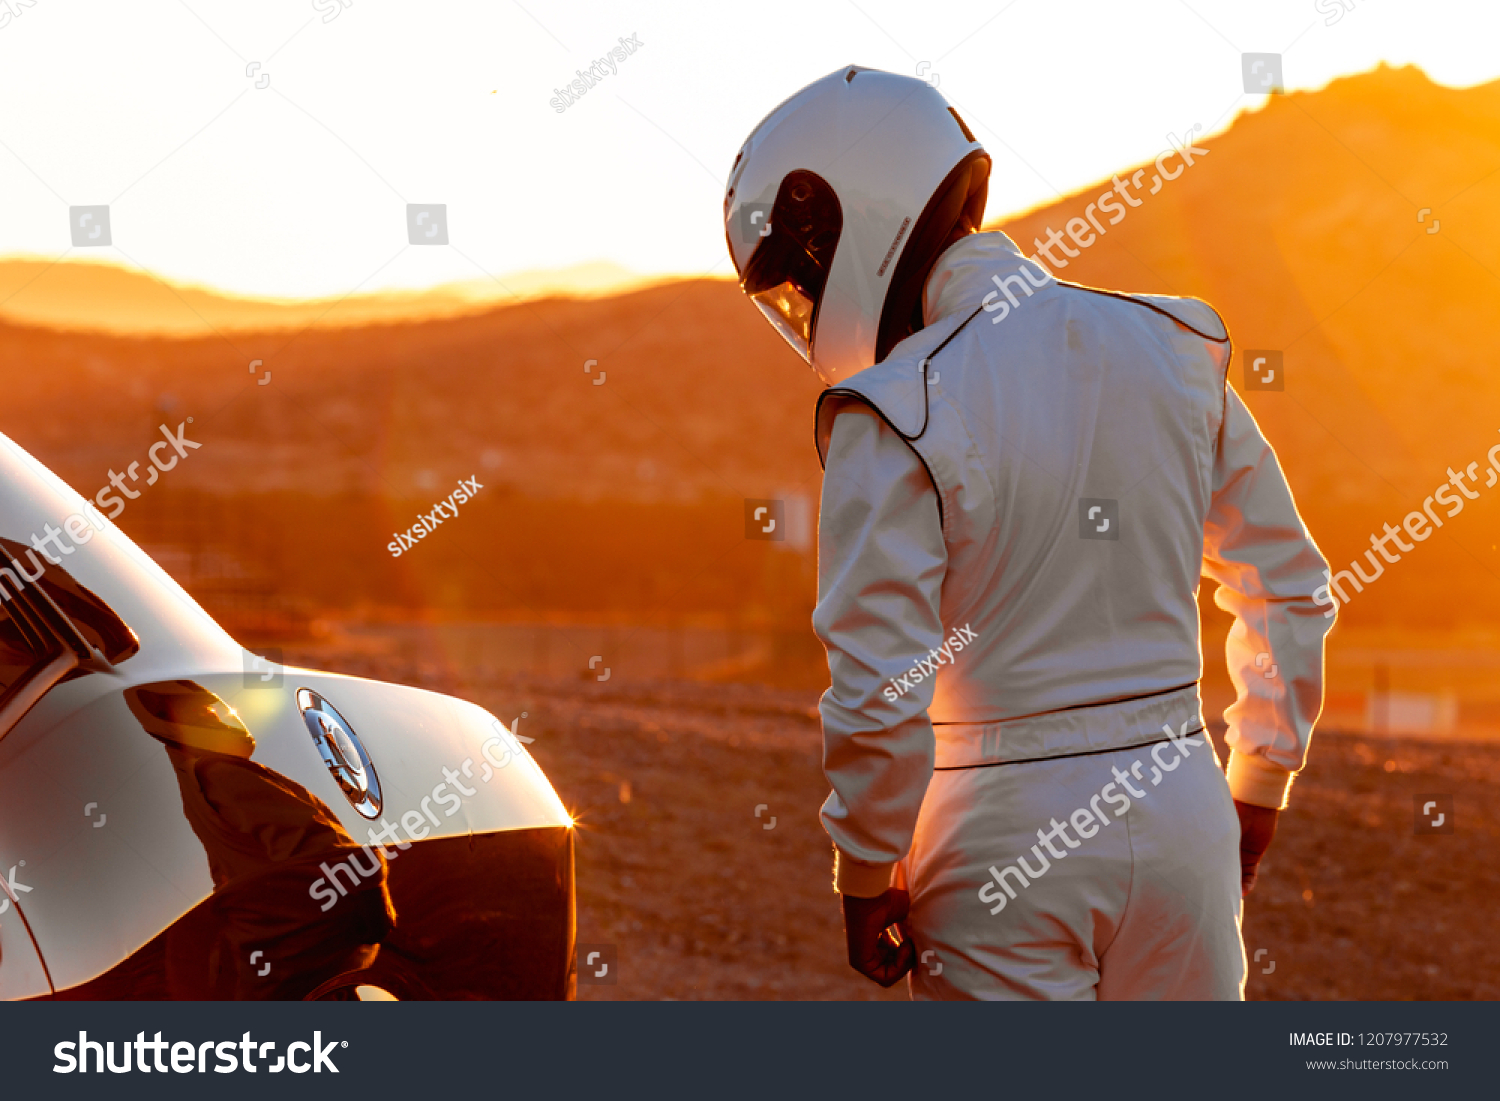 A Helmet Wearing Race Car Driver In The Early Morning Sun Looking At His Car Before Starting #1207977532